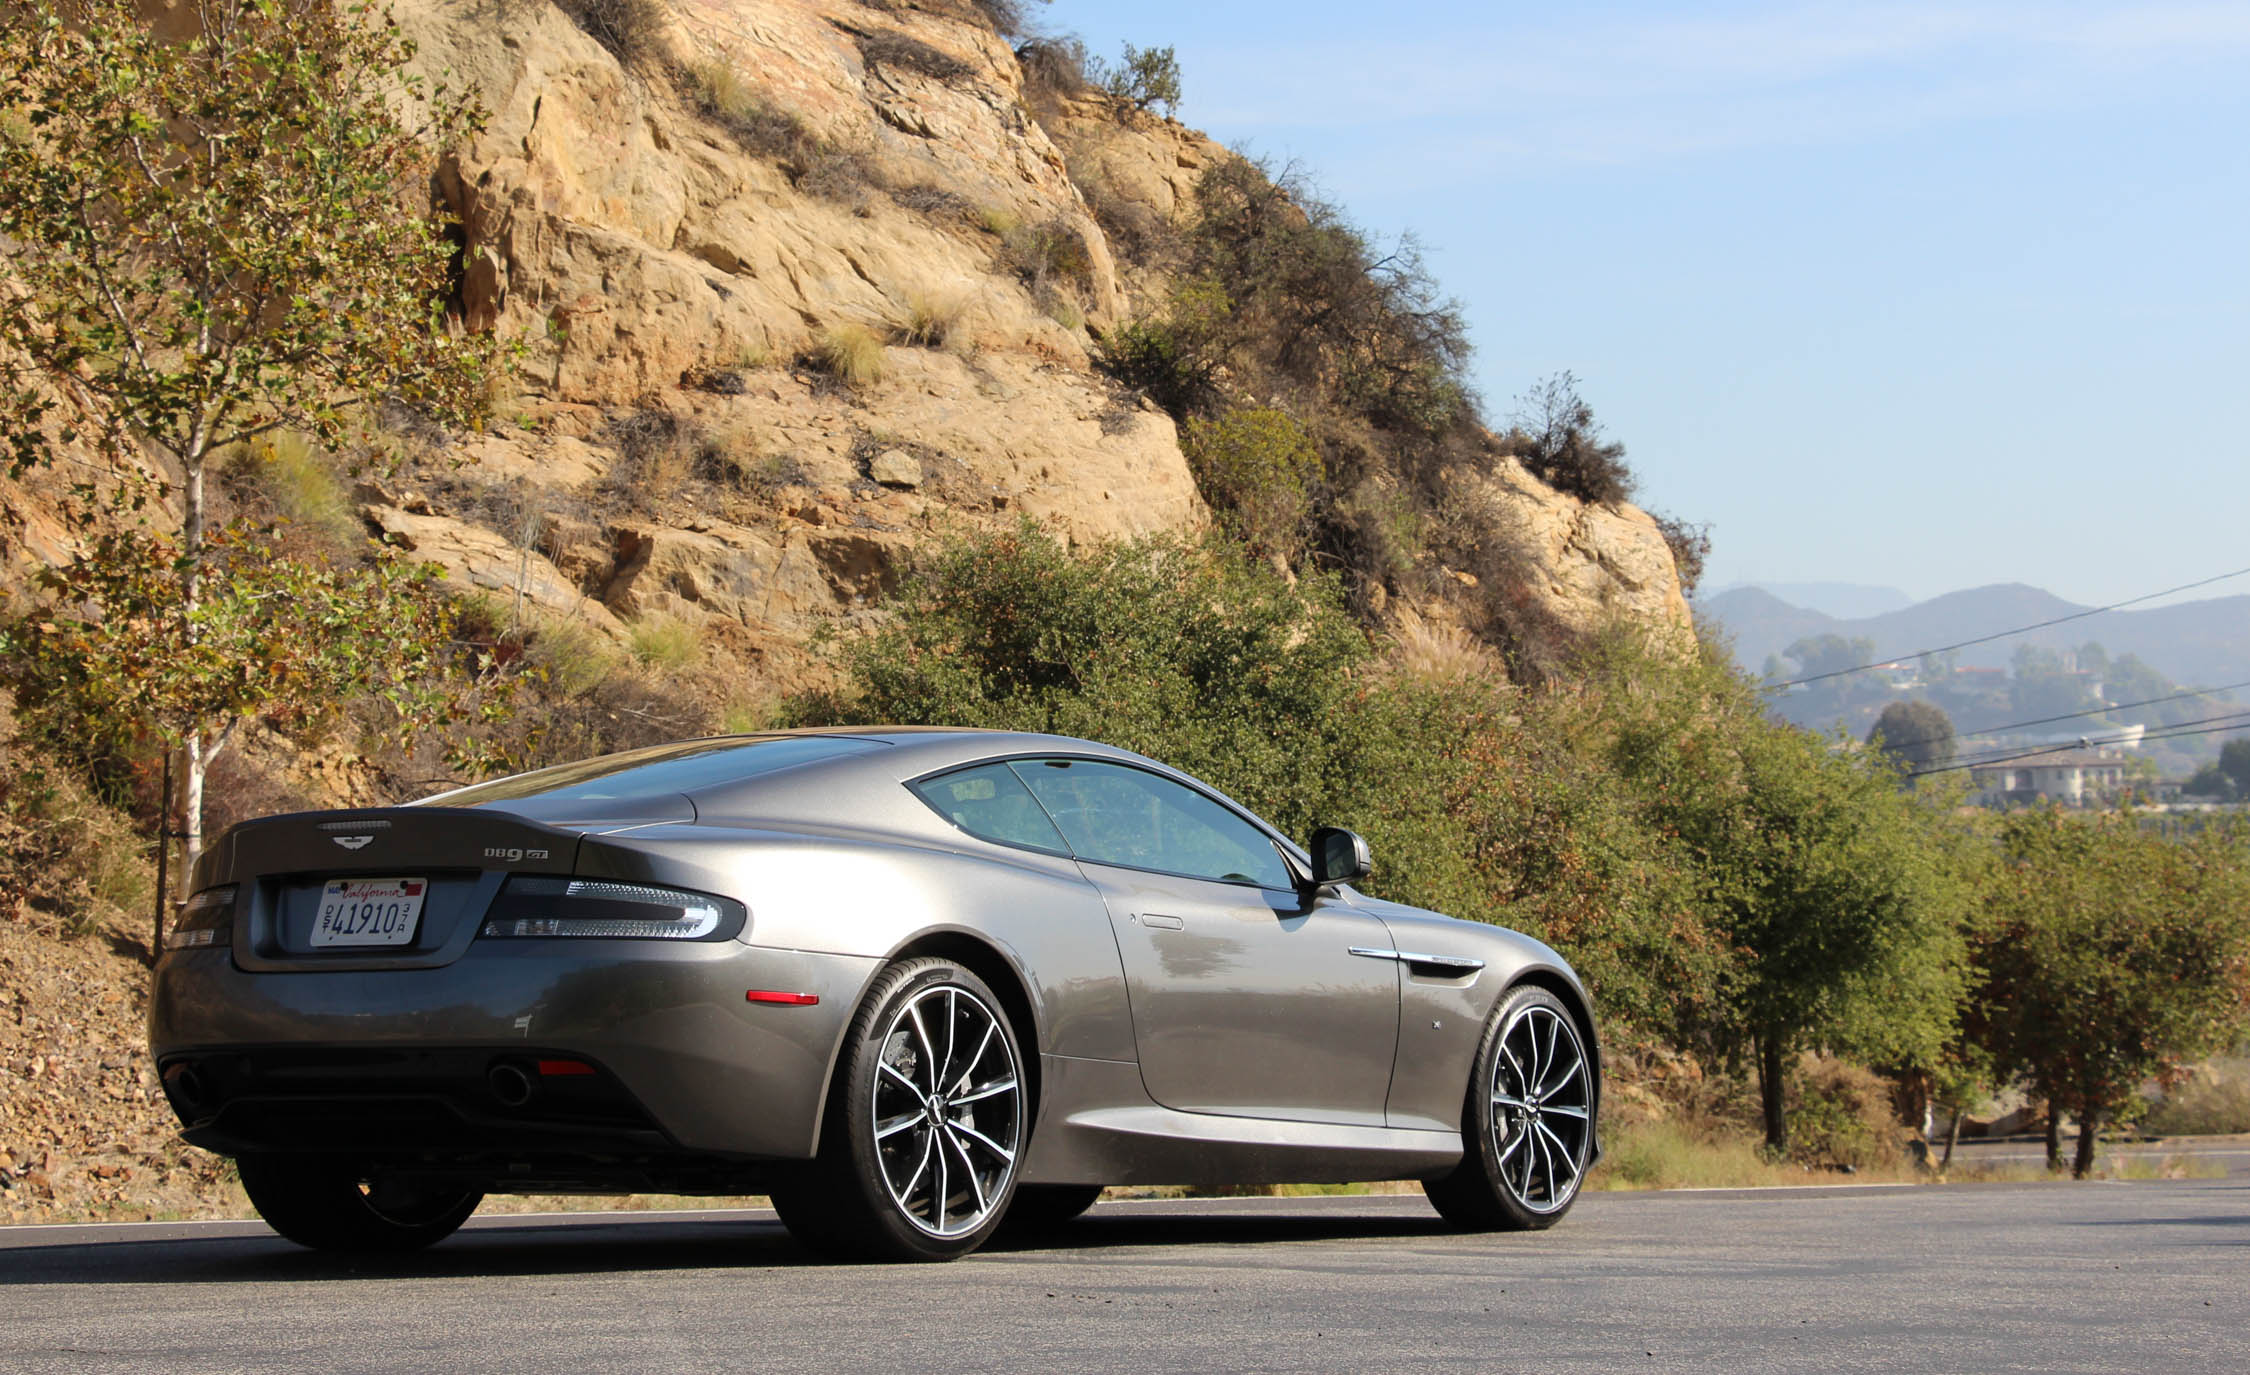 2016 Aston Martin DB9 GT (View 1 of 18)